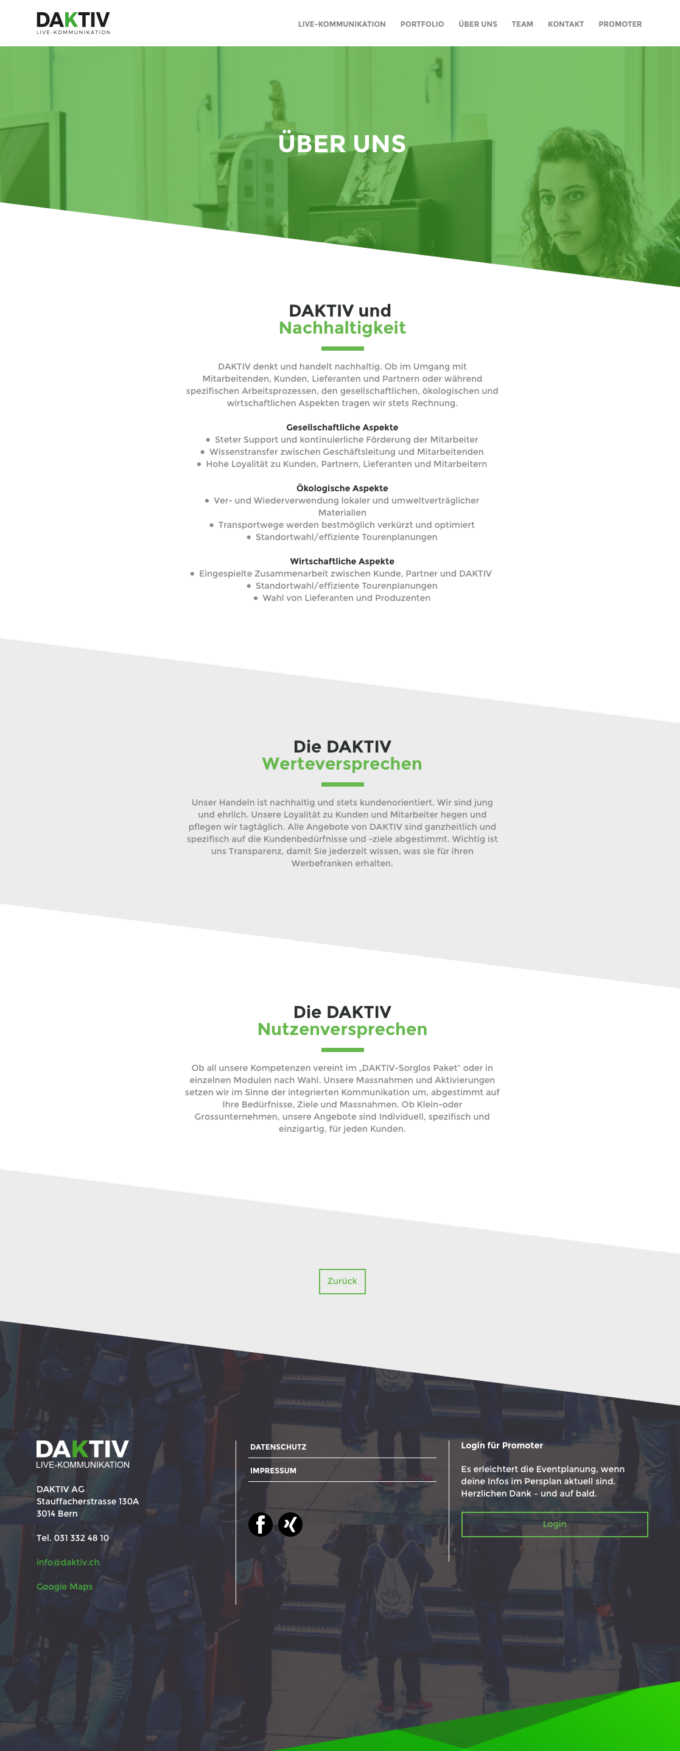 Daktiv Webdesign Outline43 Webdesign Bern Schweiz